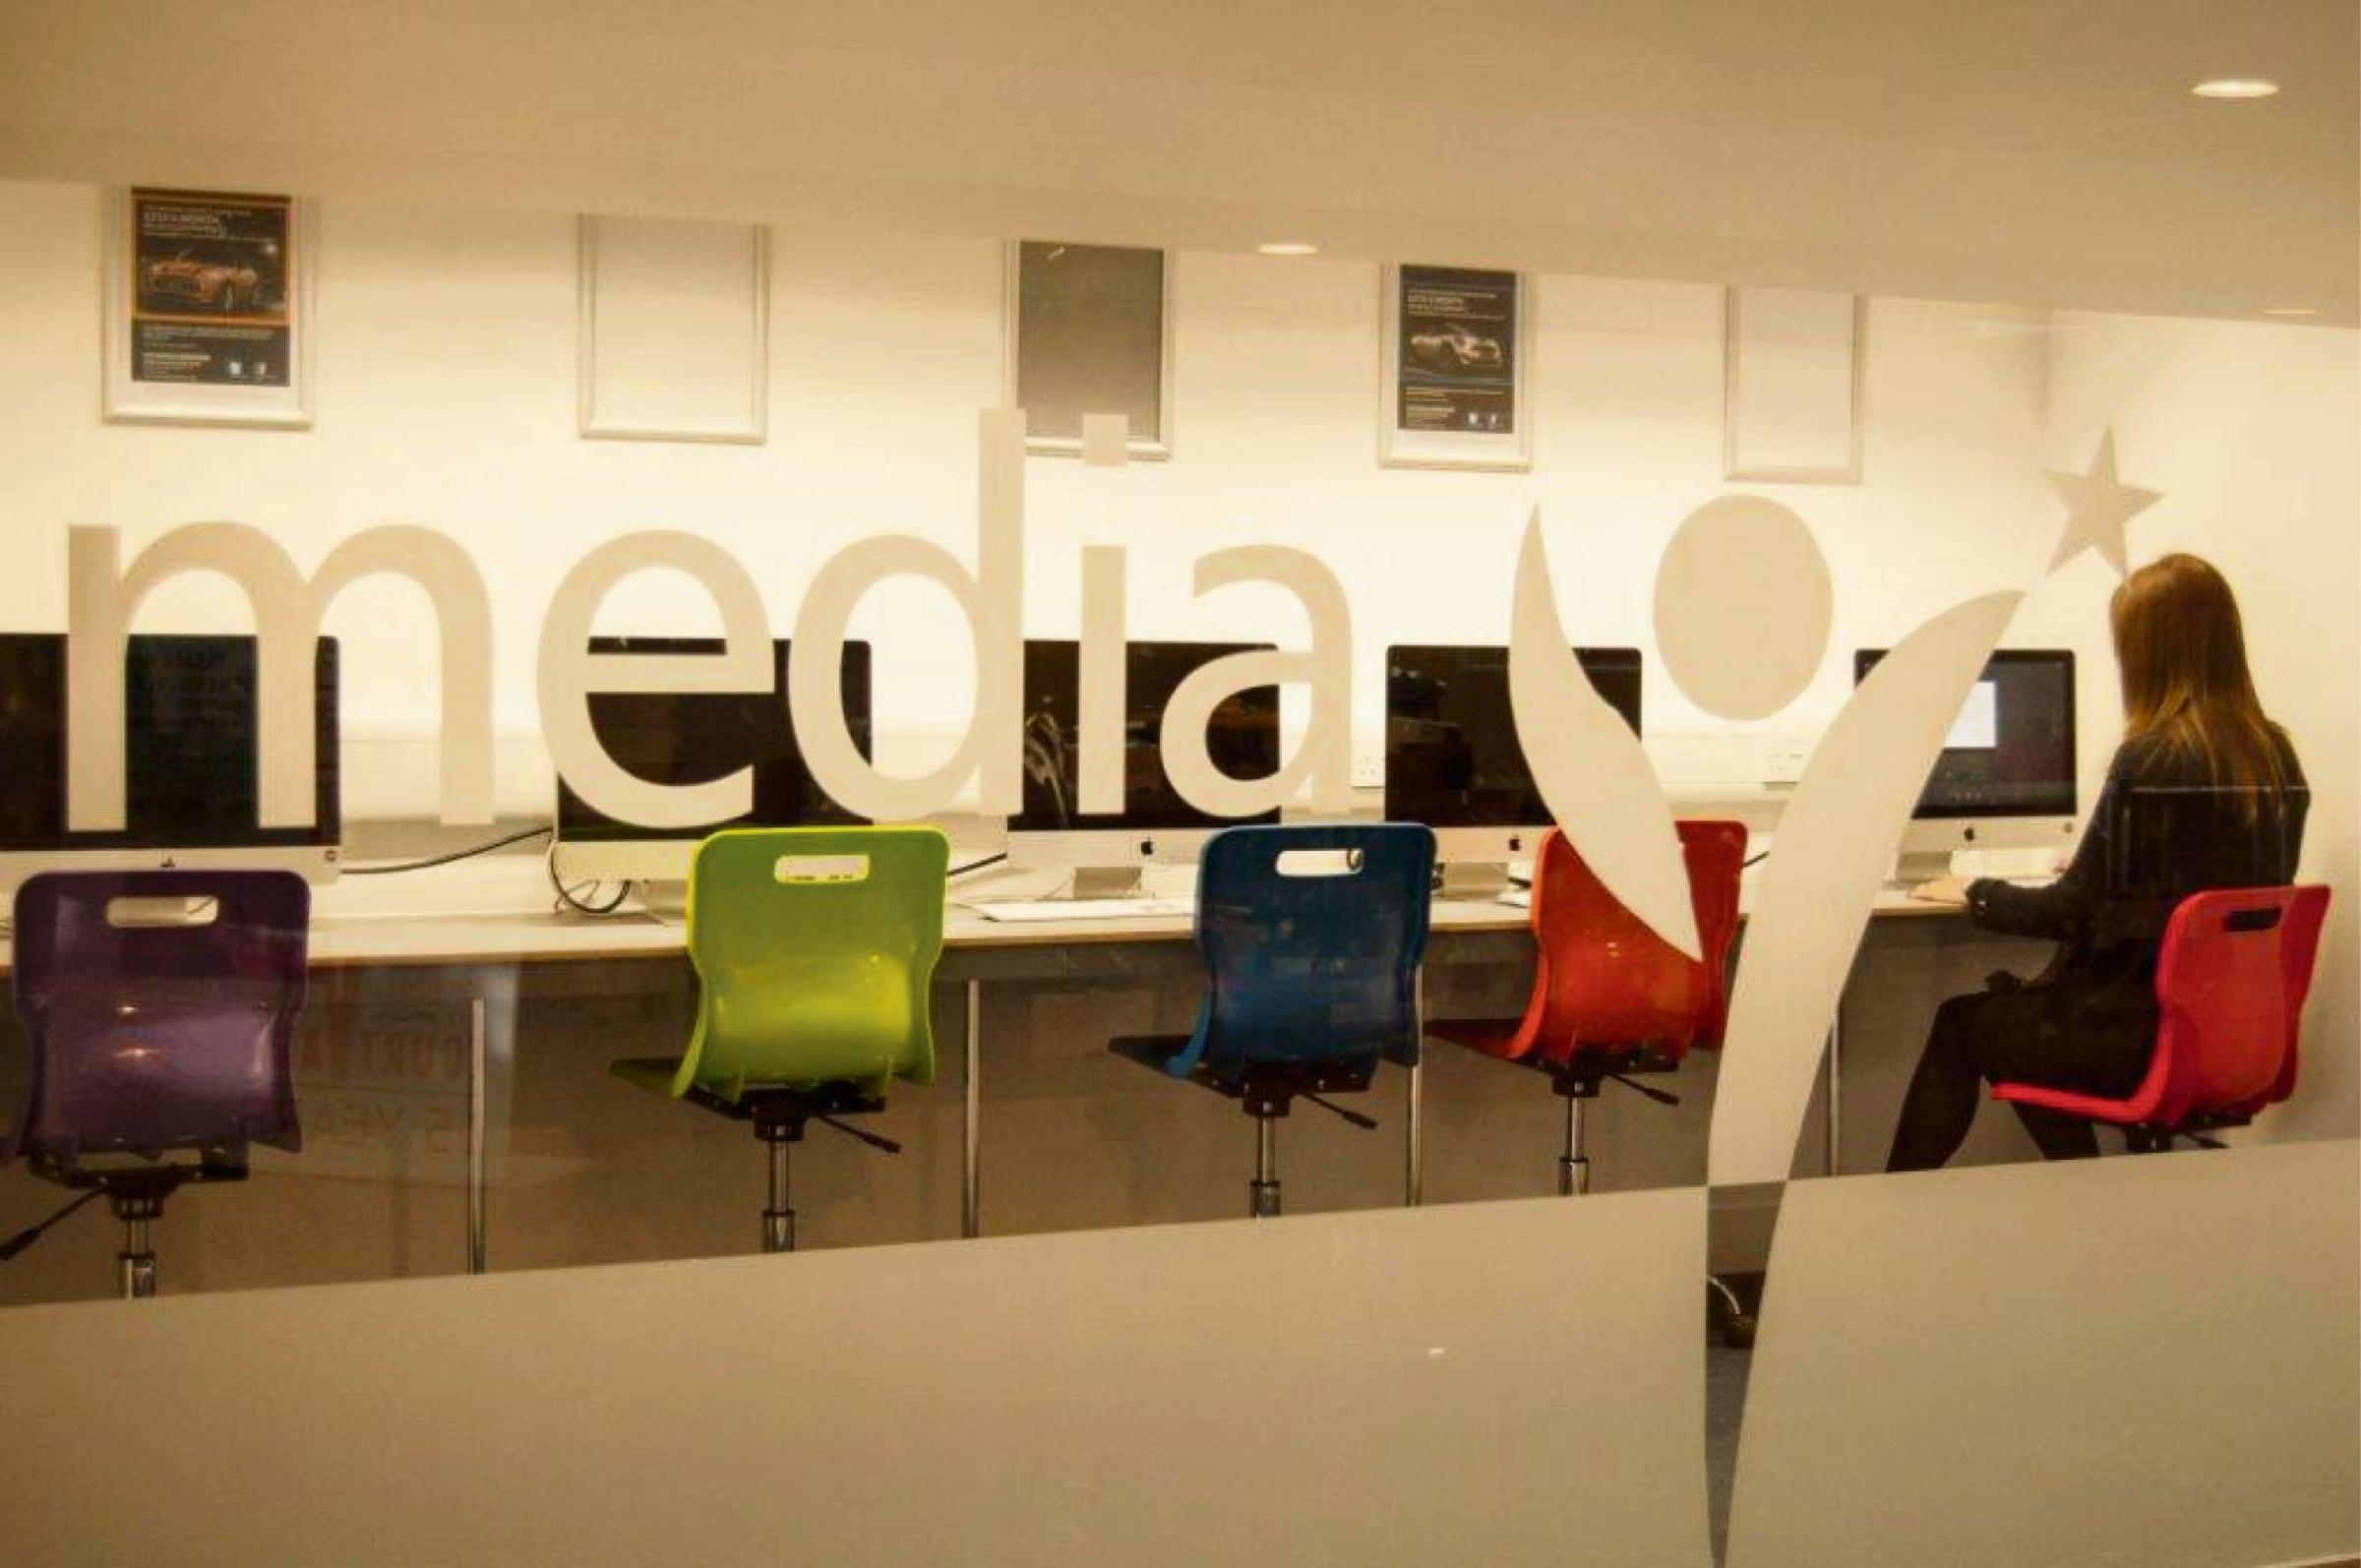 The new media area at the Courtyard in Hereford.